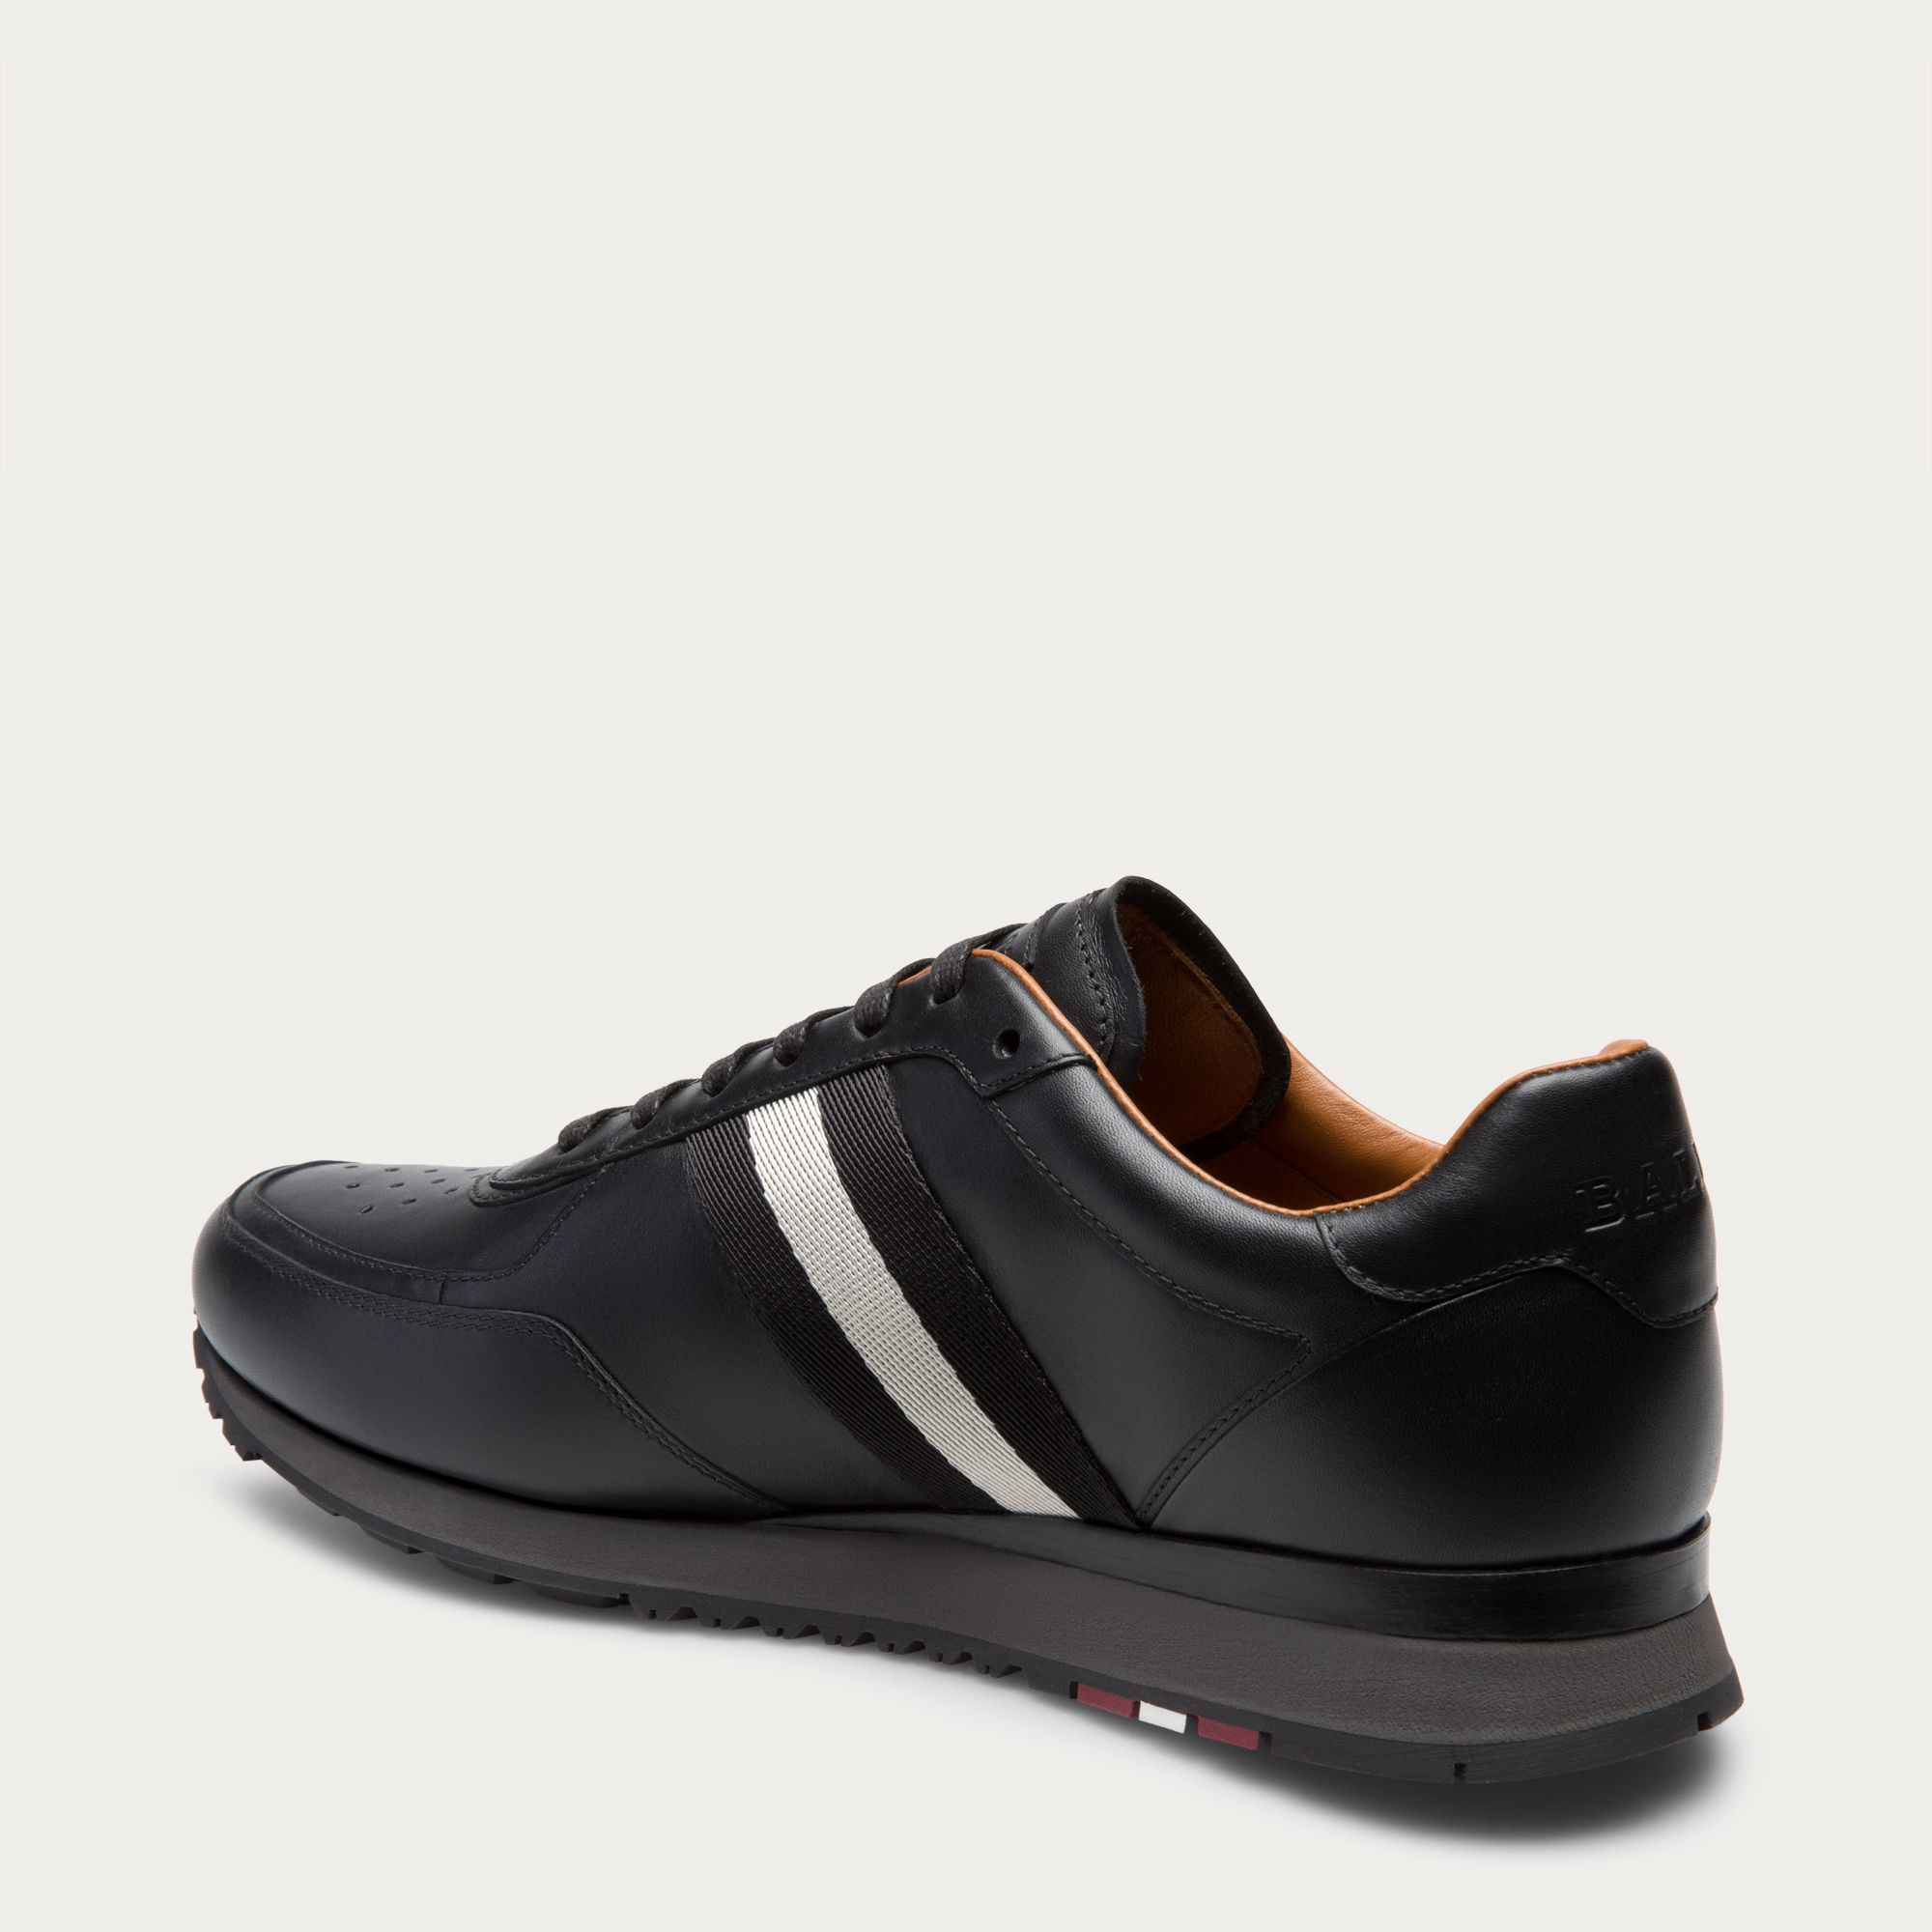 Bally Sneakers Shoes Man In Black For Men